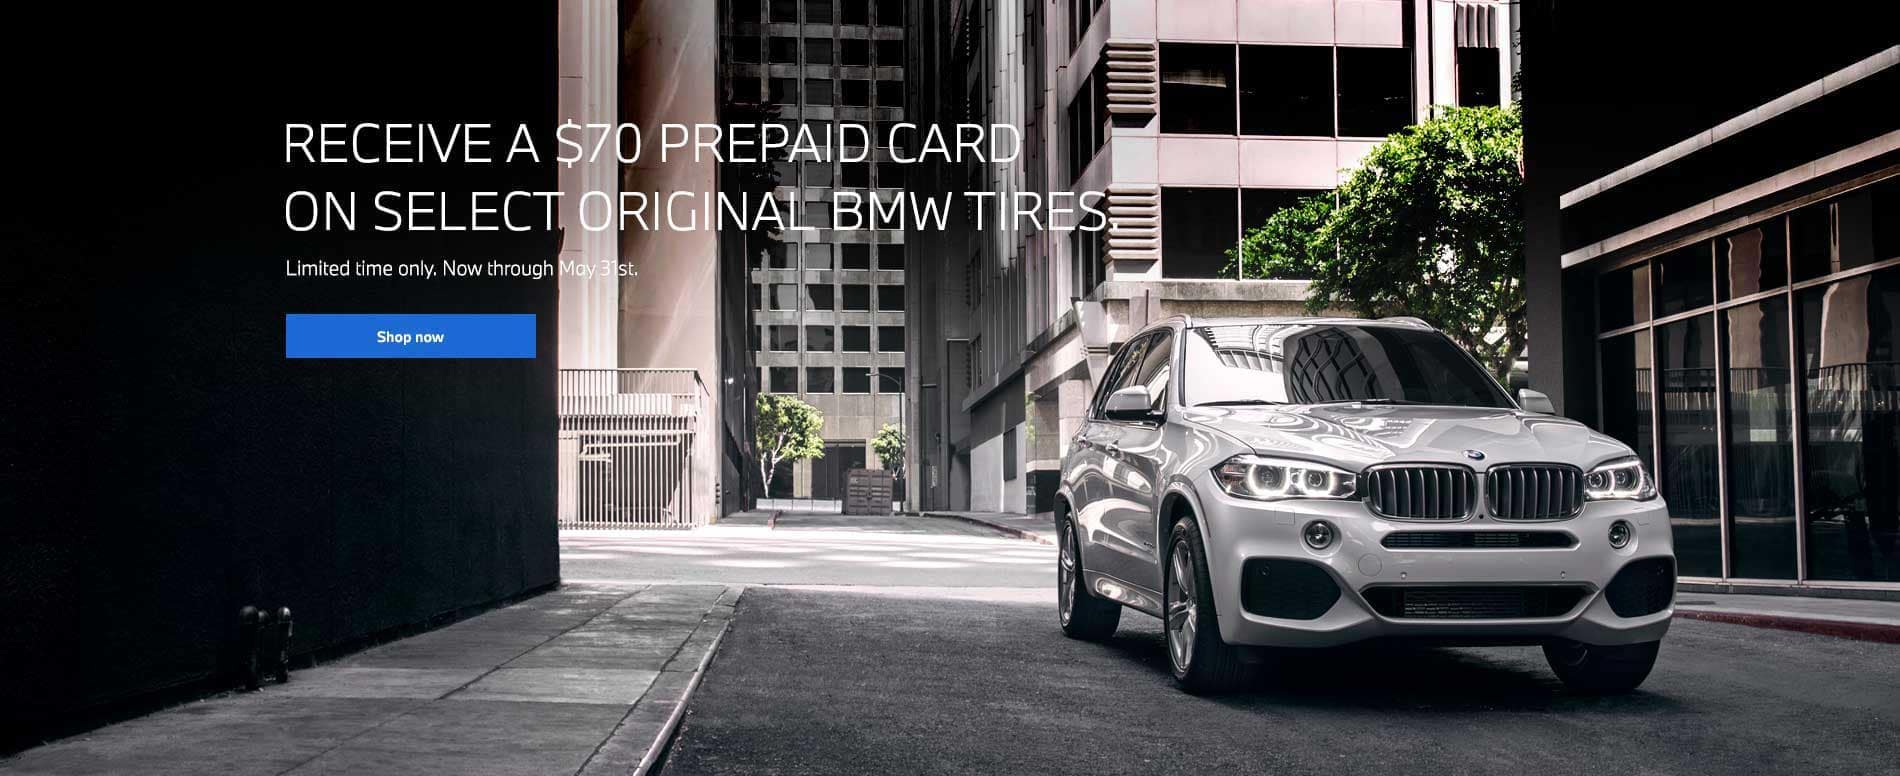 BMW_Spring21-TireRebate_DlrWebsite_1900x776